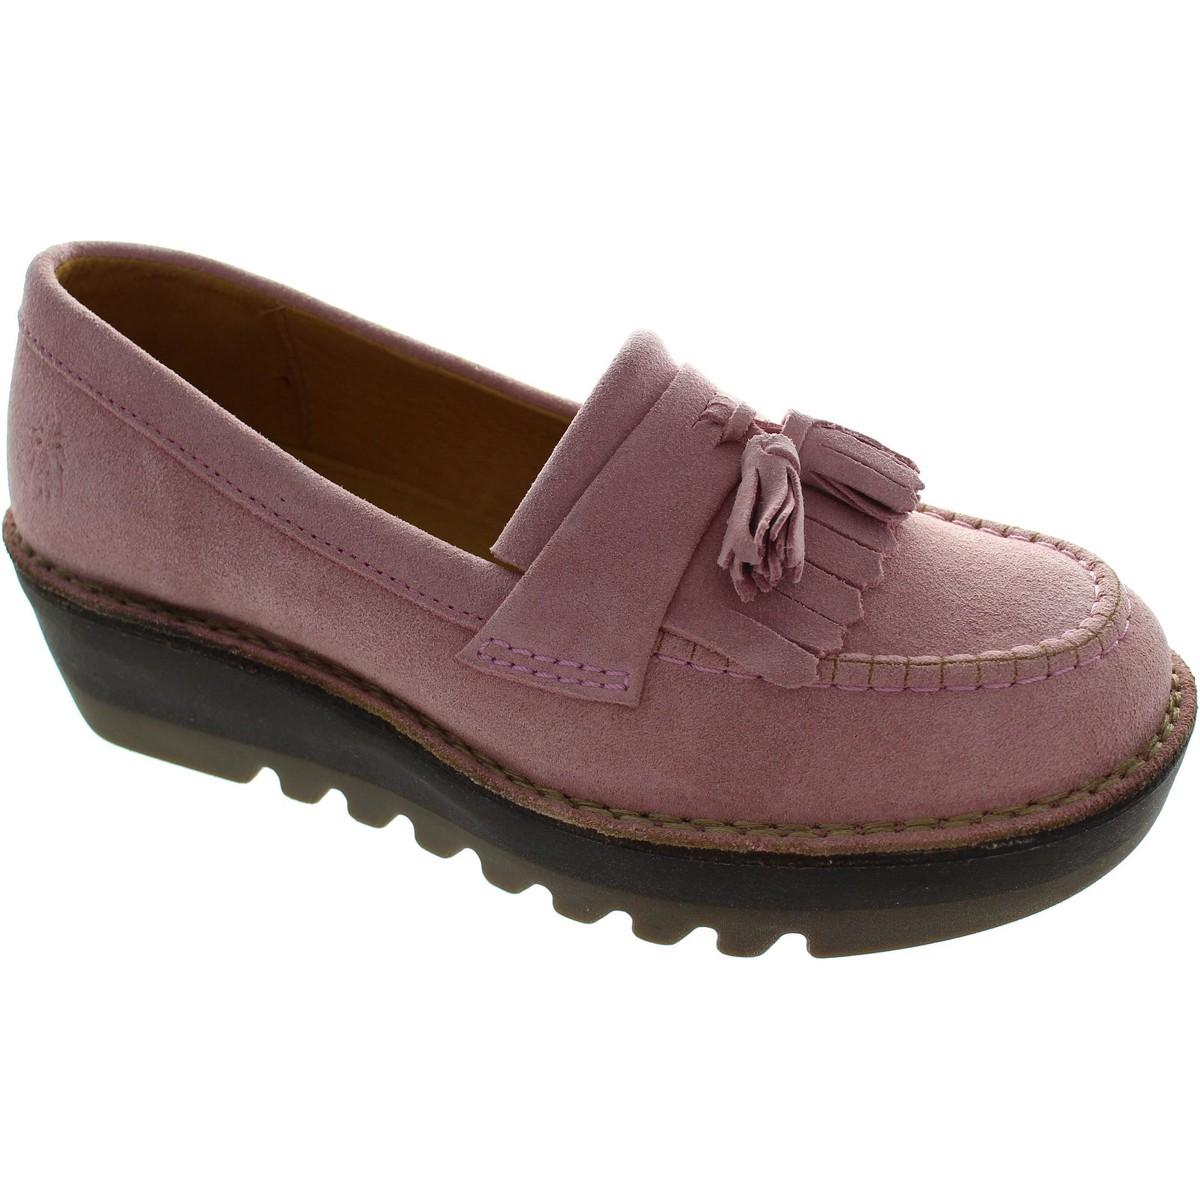 e2a9c011db8 Fly London Juno Women s Loafers   Casual Shoes In Pink in Pink - Lyst